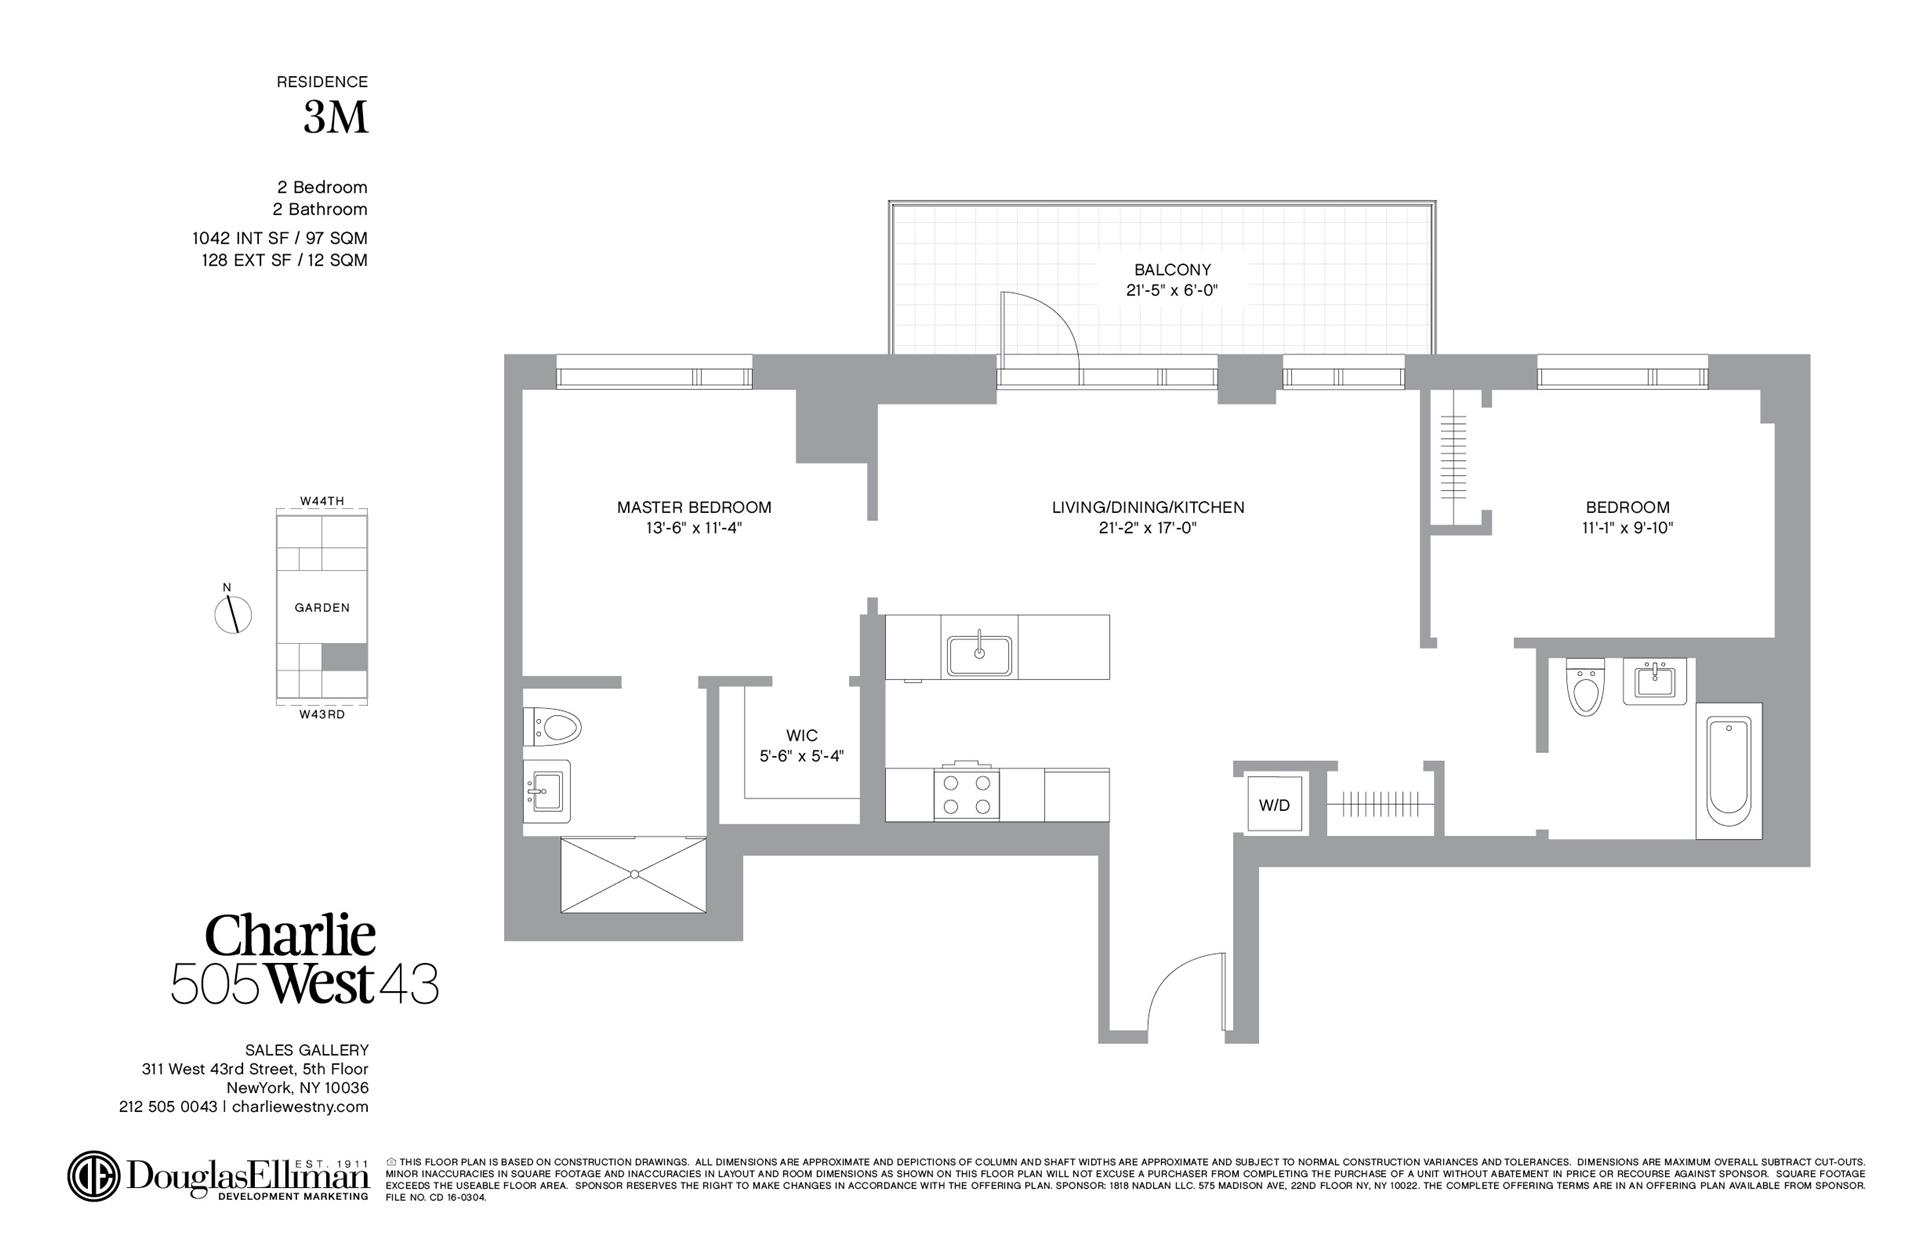 Floor plan of 505 West 43rd St, 3M - Clinton, New York